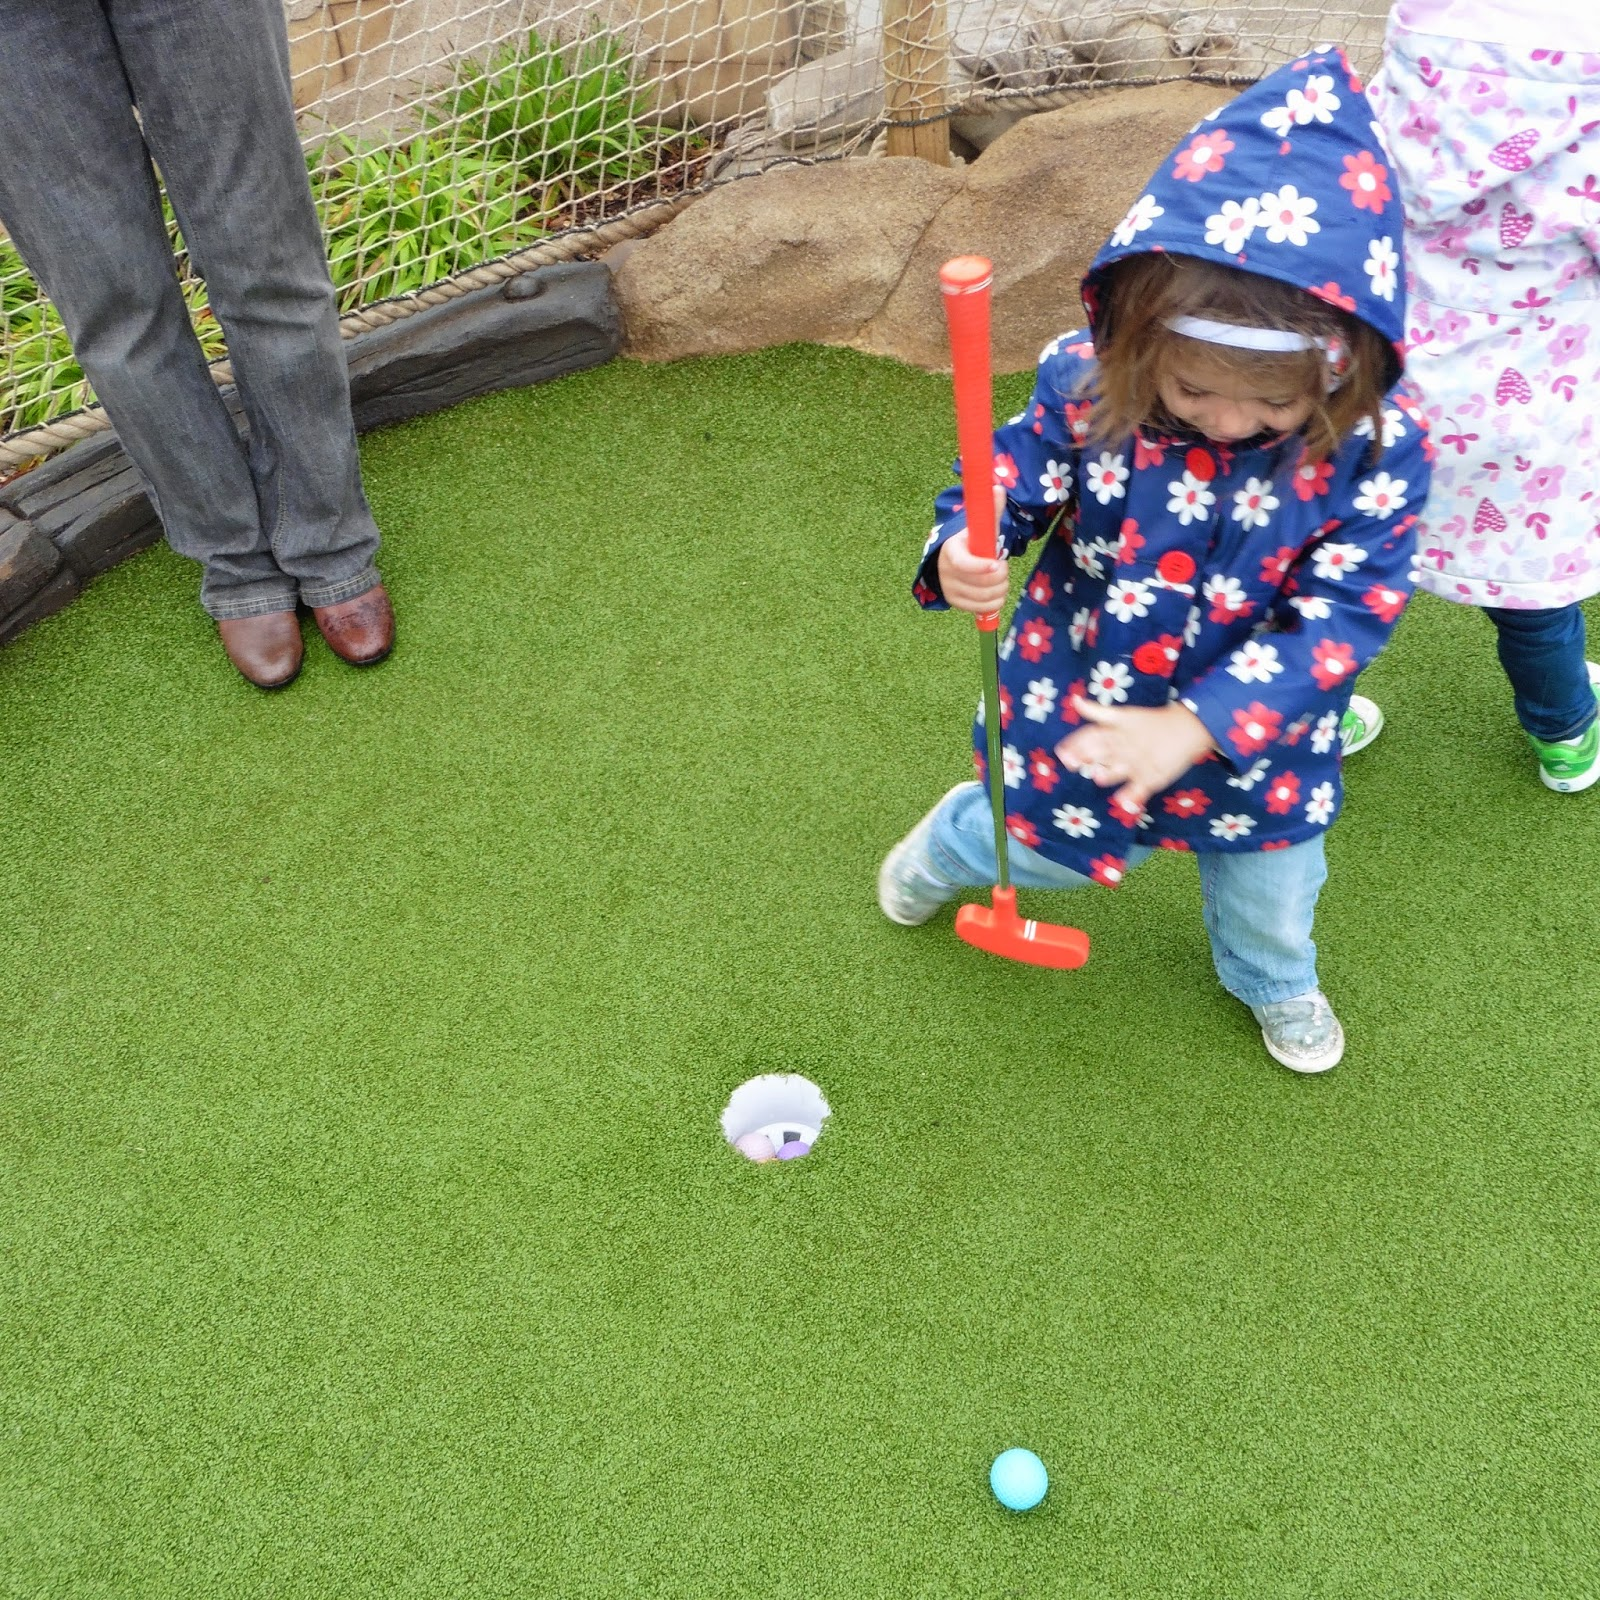 Youngest playing golf